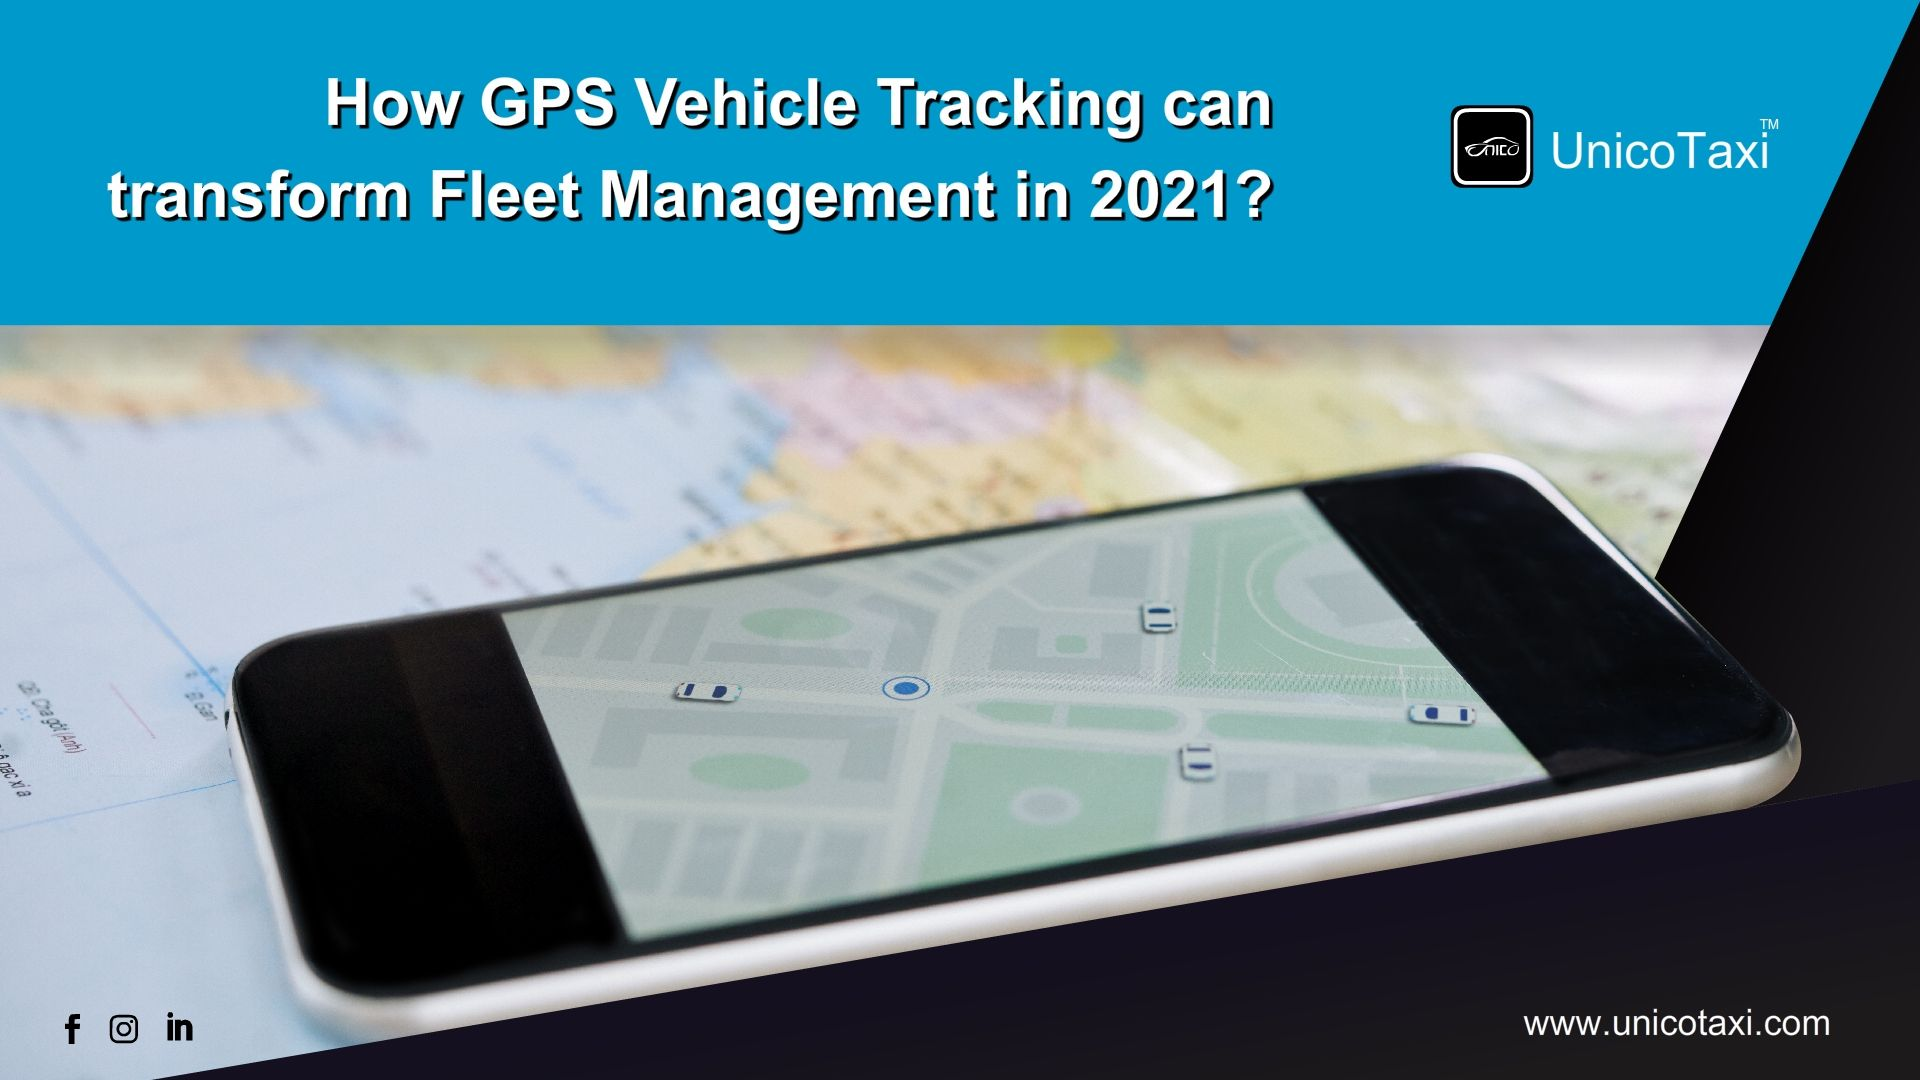 Best Car Gps 2021 How GPS Vehicle Tracking Can Transform Fleet Management in 2021 in